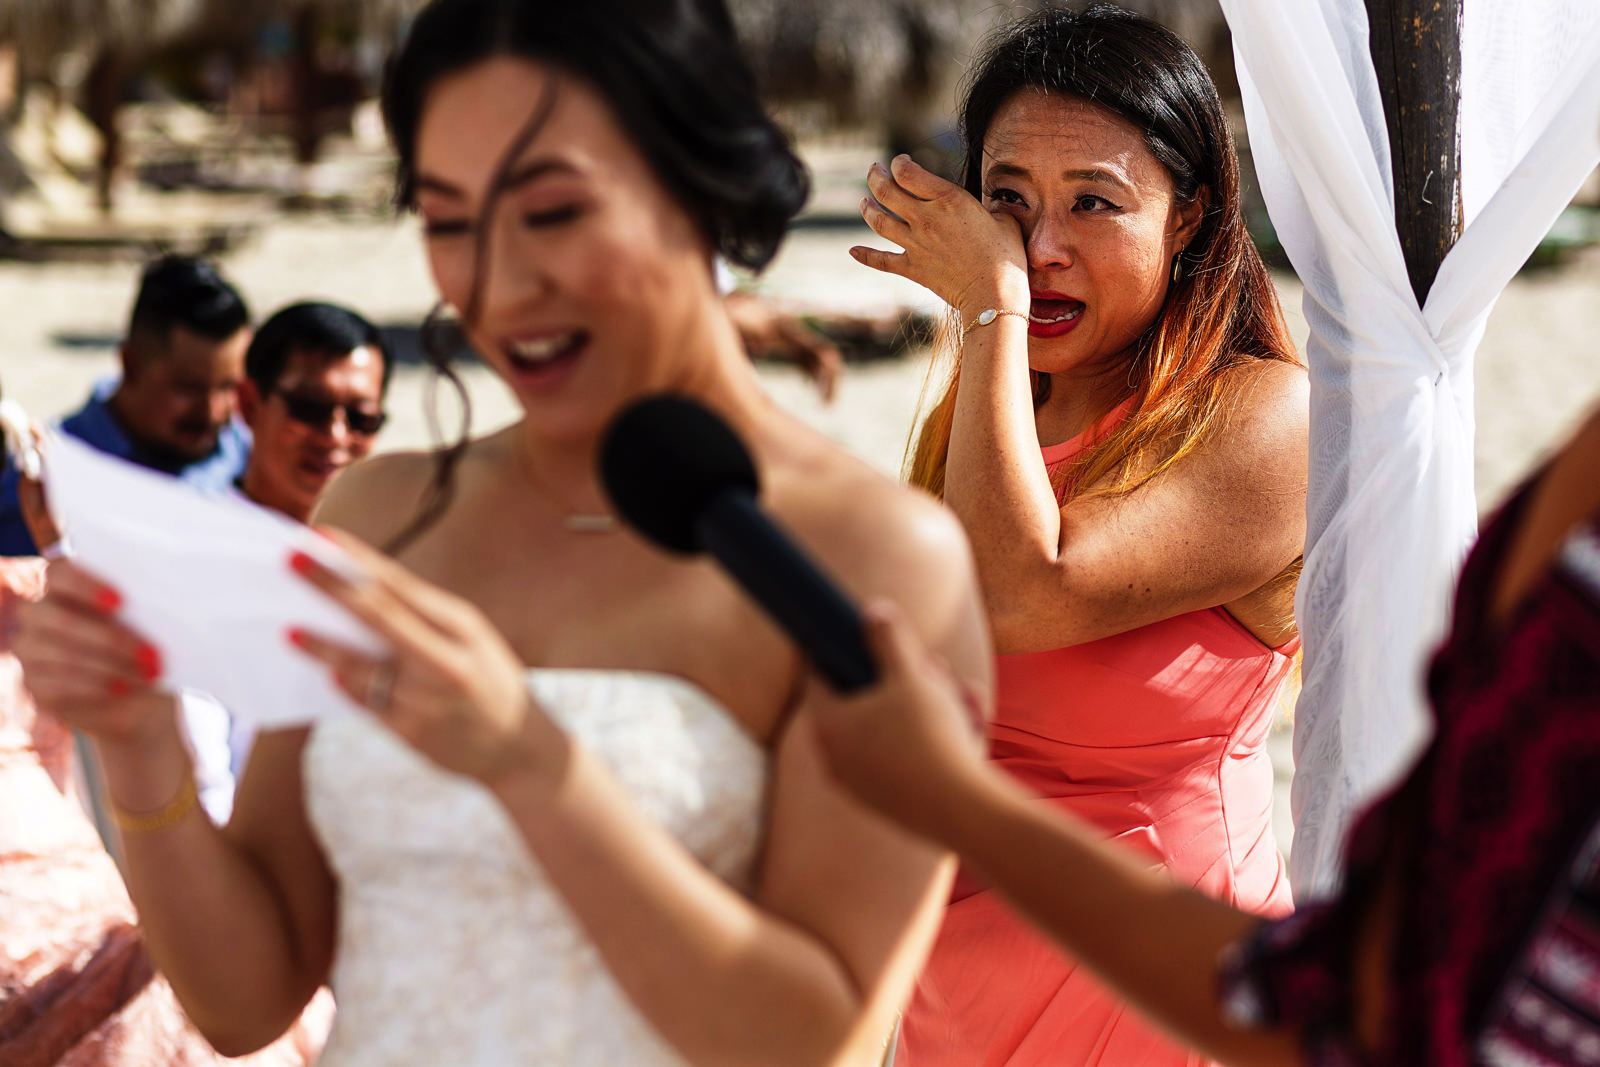 Maid-of-honor cries behind the bride while she is receiving her vows